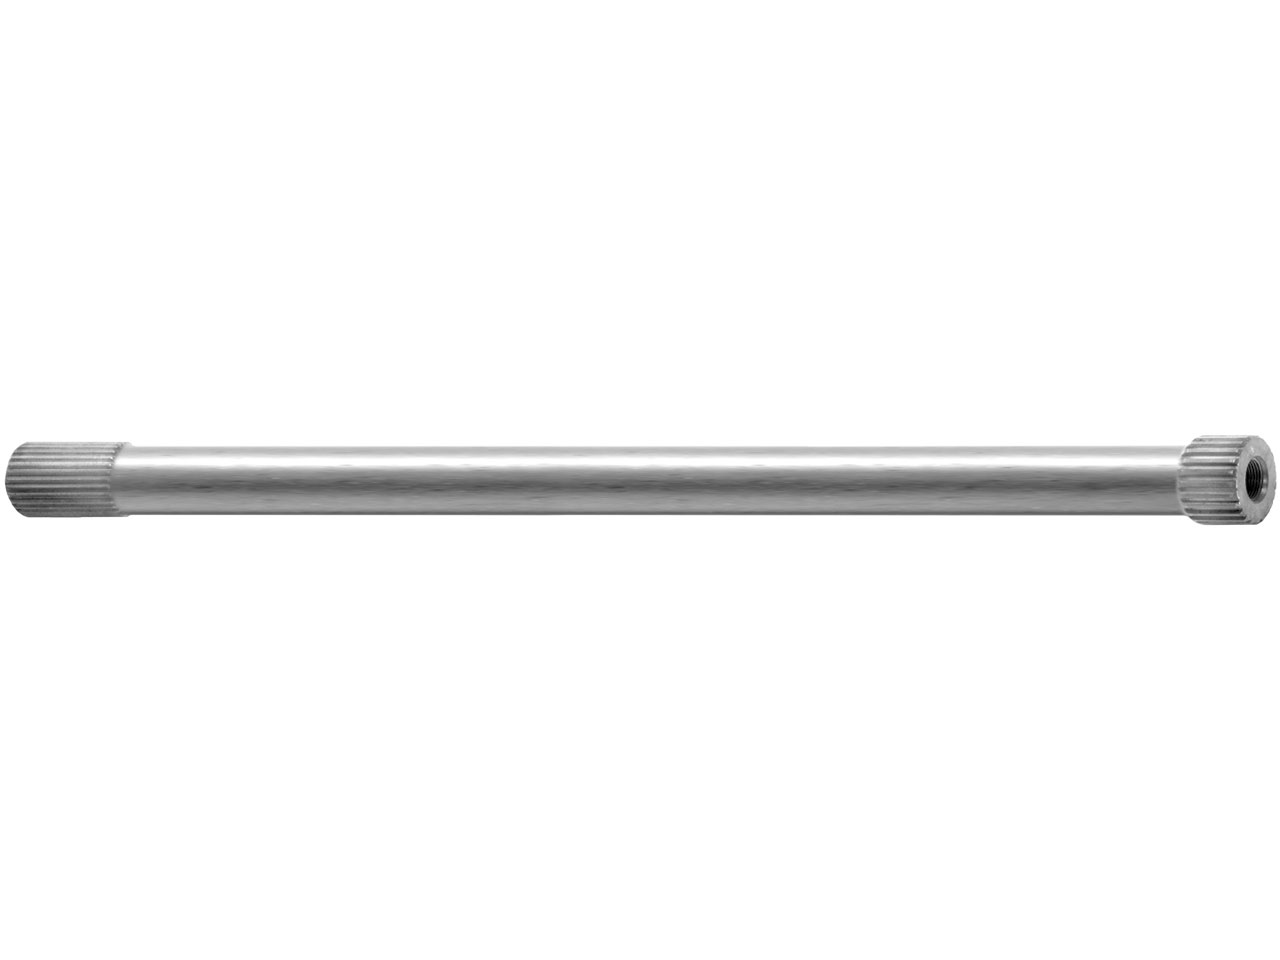 "Frankland 31 Spline Gun Drilled Axle - (28"")"